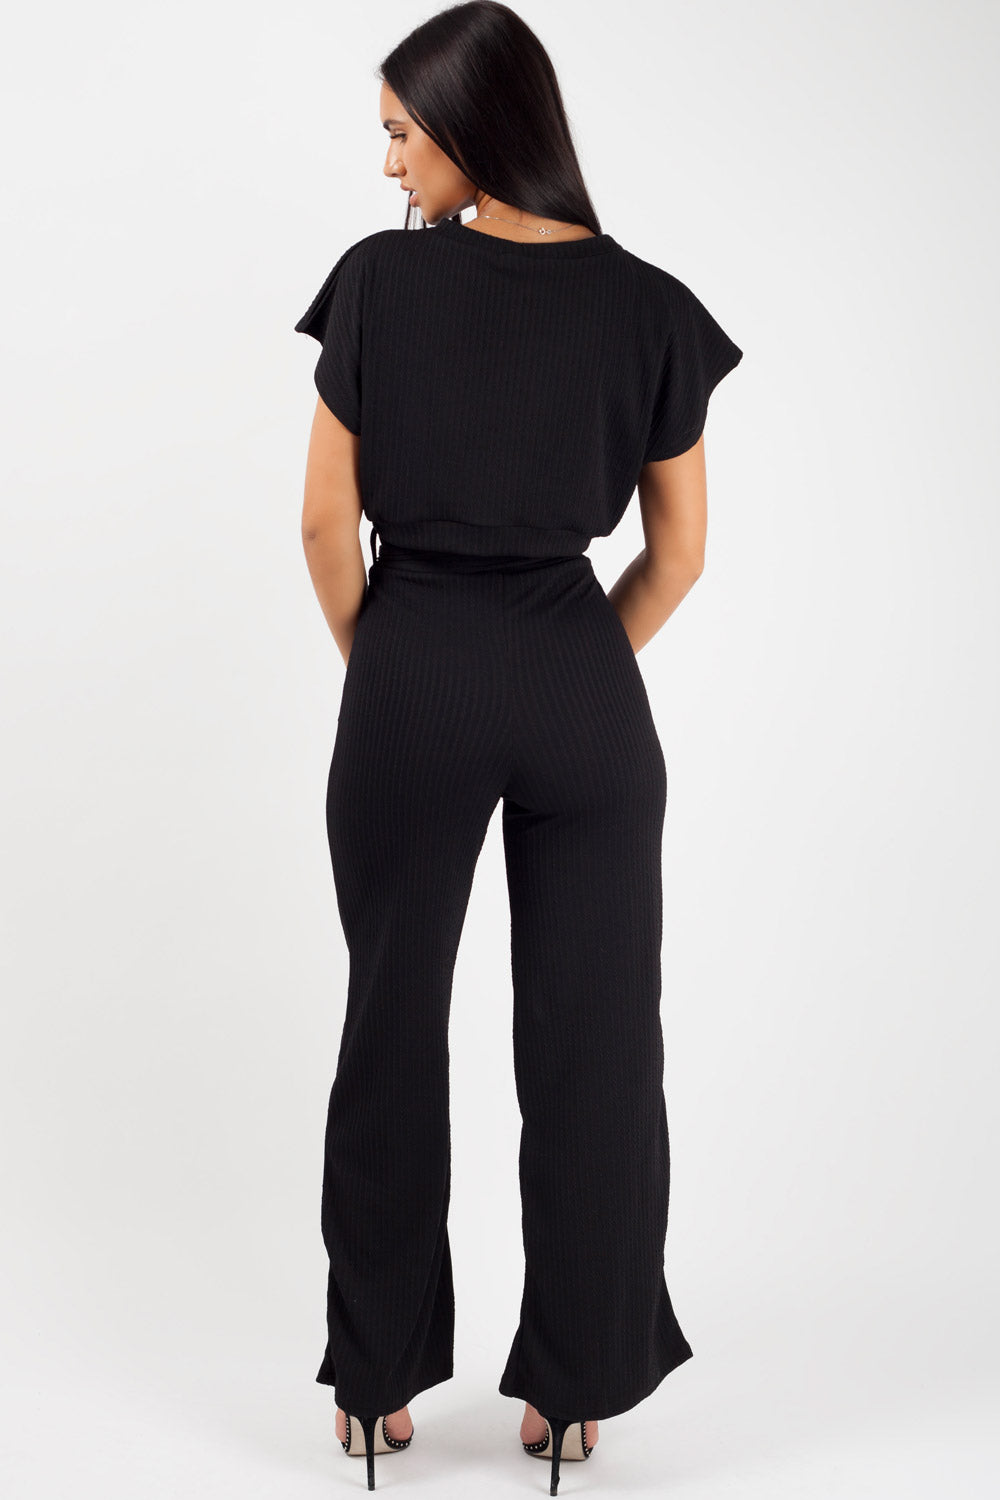 women's loungewear set black